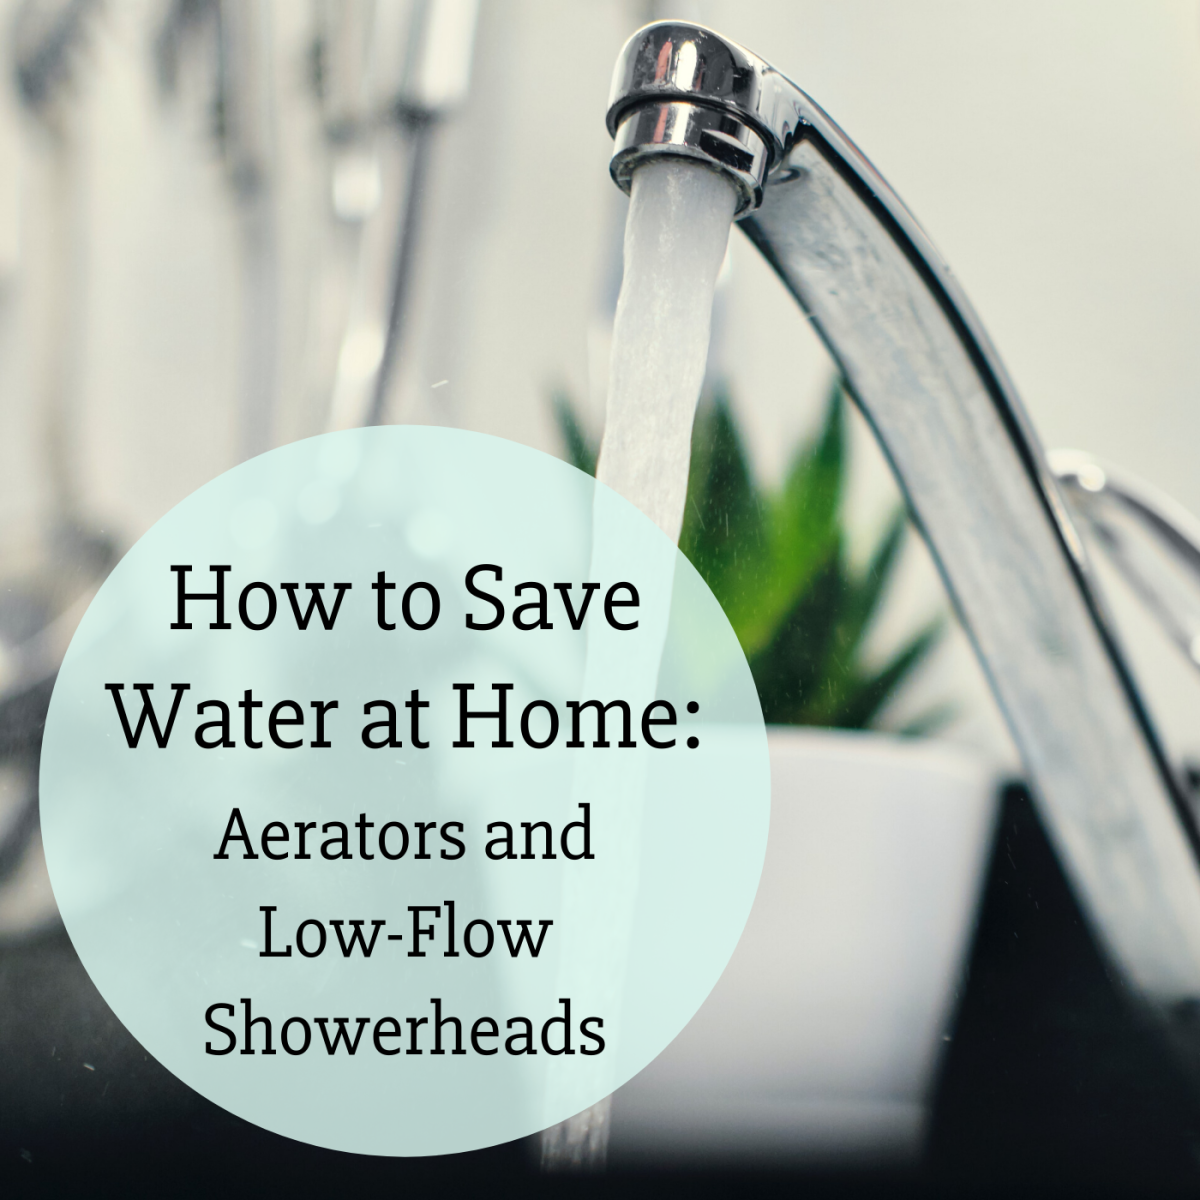 Learn about water-efficient fixtures and add-ons for your faucets and showerhead.